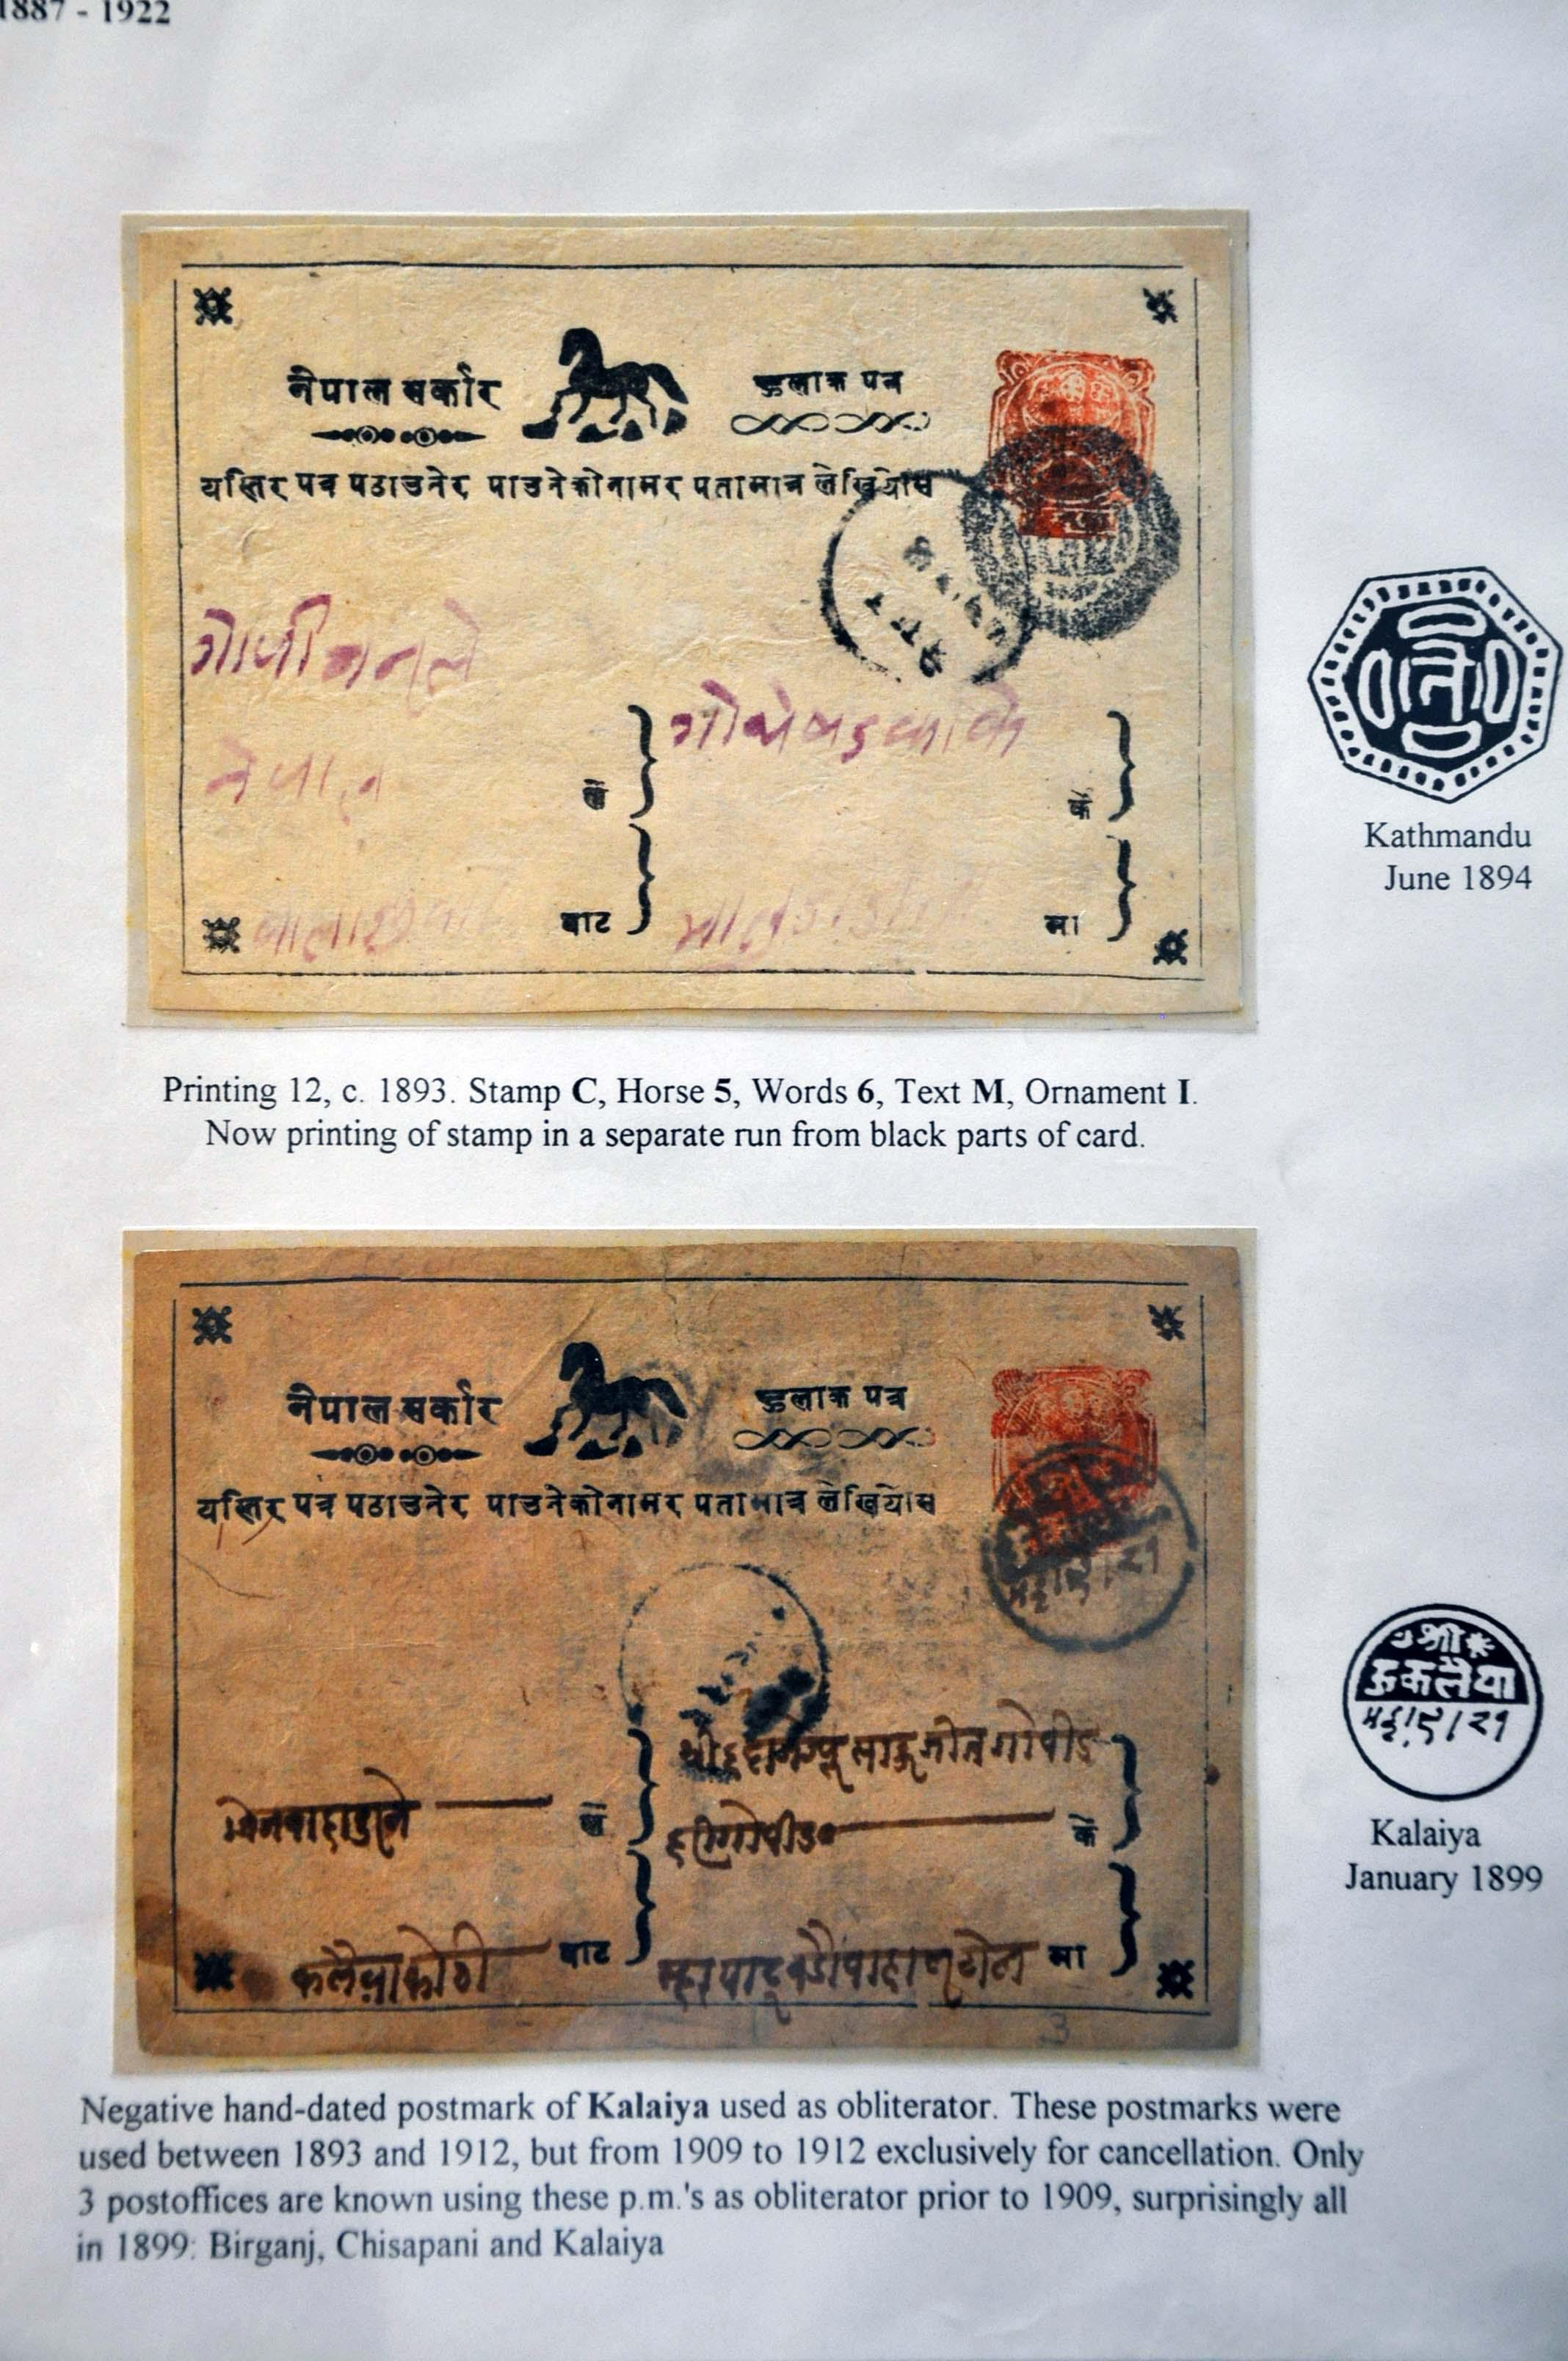 Lot 22 - Great Britain and former colonies Nepal -  Corinphila Veilingen Auction 245-246 Day 1 - Nepal - The Dick van der Wateren Collection, Foreign countries - Single lots, Picture postcards